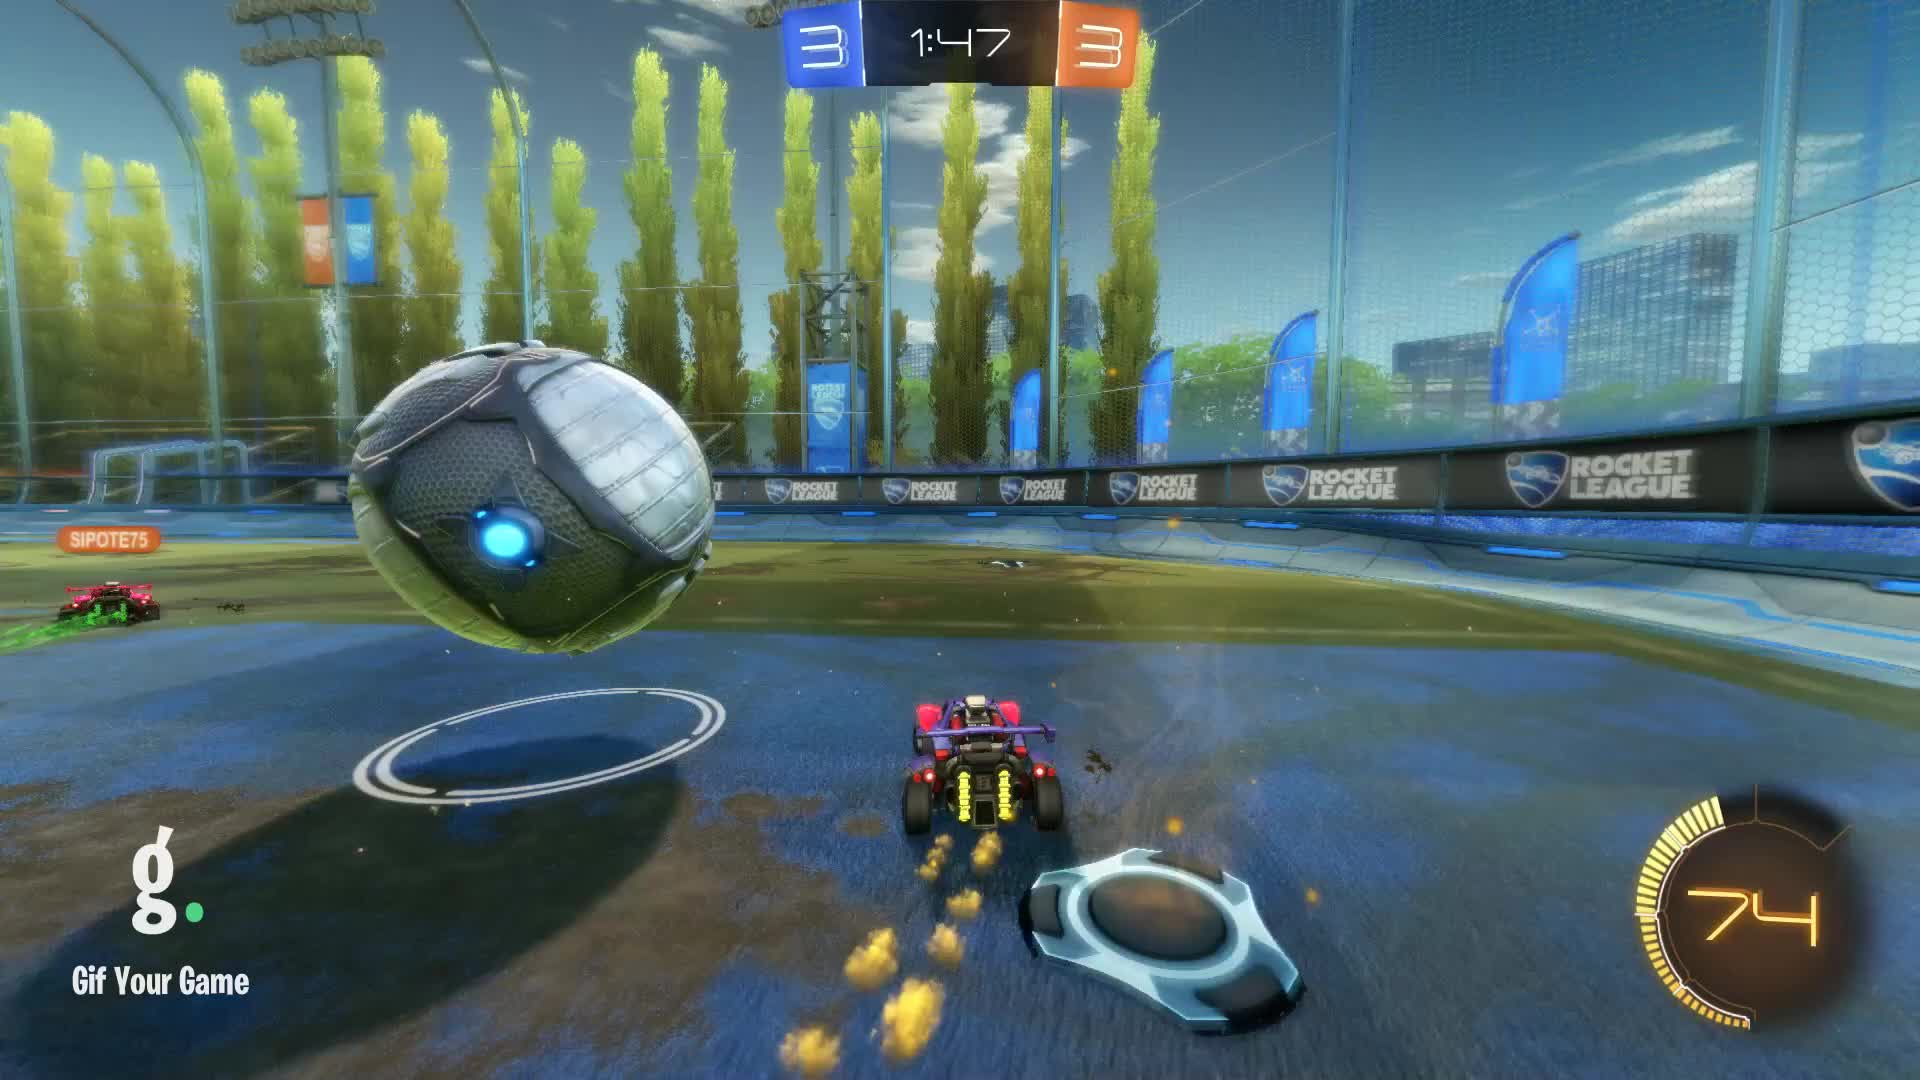 Gif Your Game, GifYourGame, Goal, Rocket League, RocketLeague, trisk, Goal 7: trisk GIFs